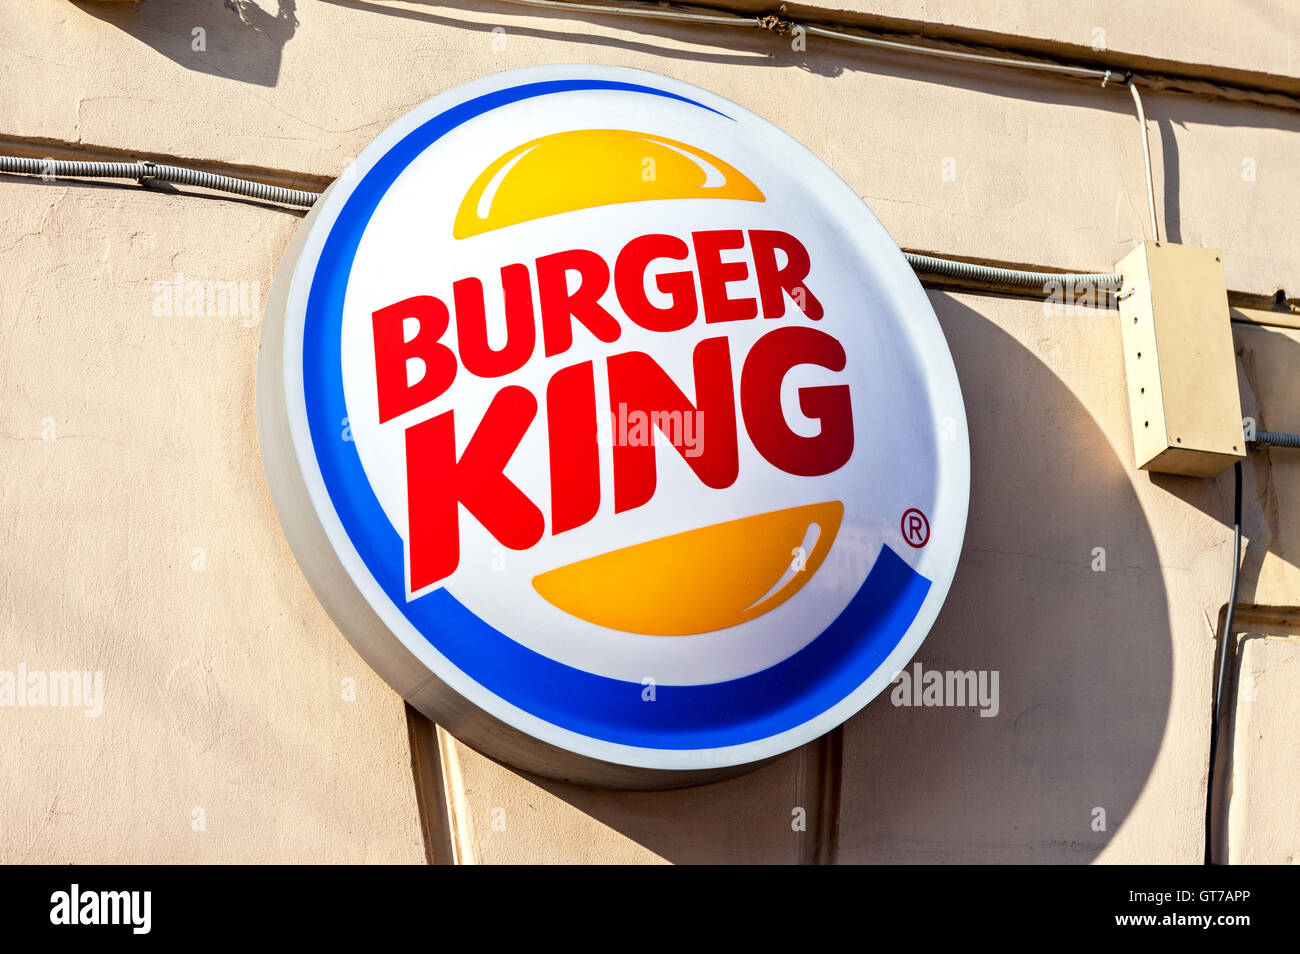 Burger king logo design and history of burger king logo - Burger King Restaurants Logo Burger King Often Abbreviated As Bk Is A Global